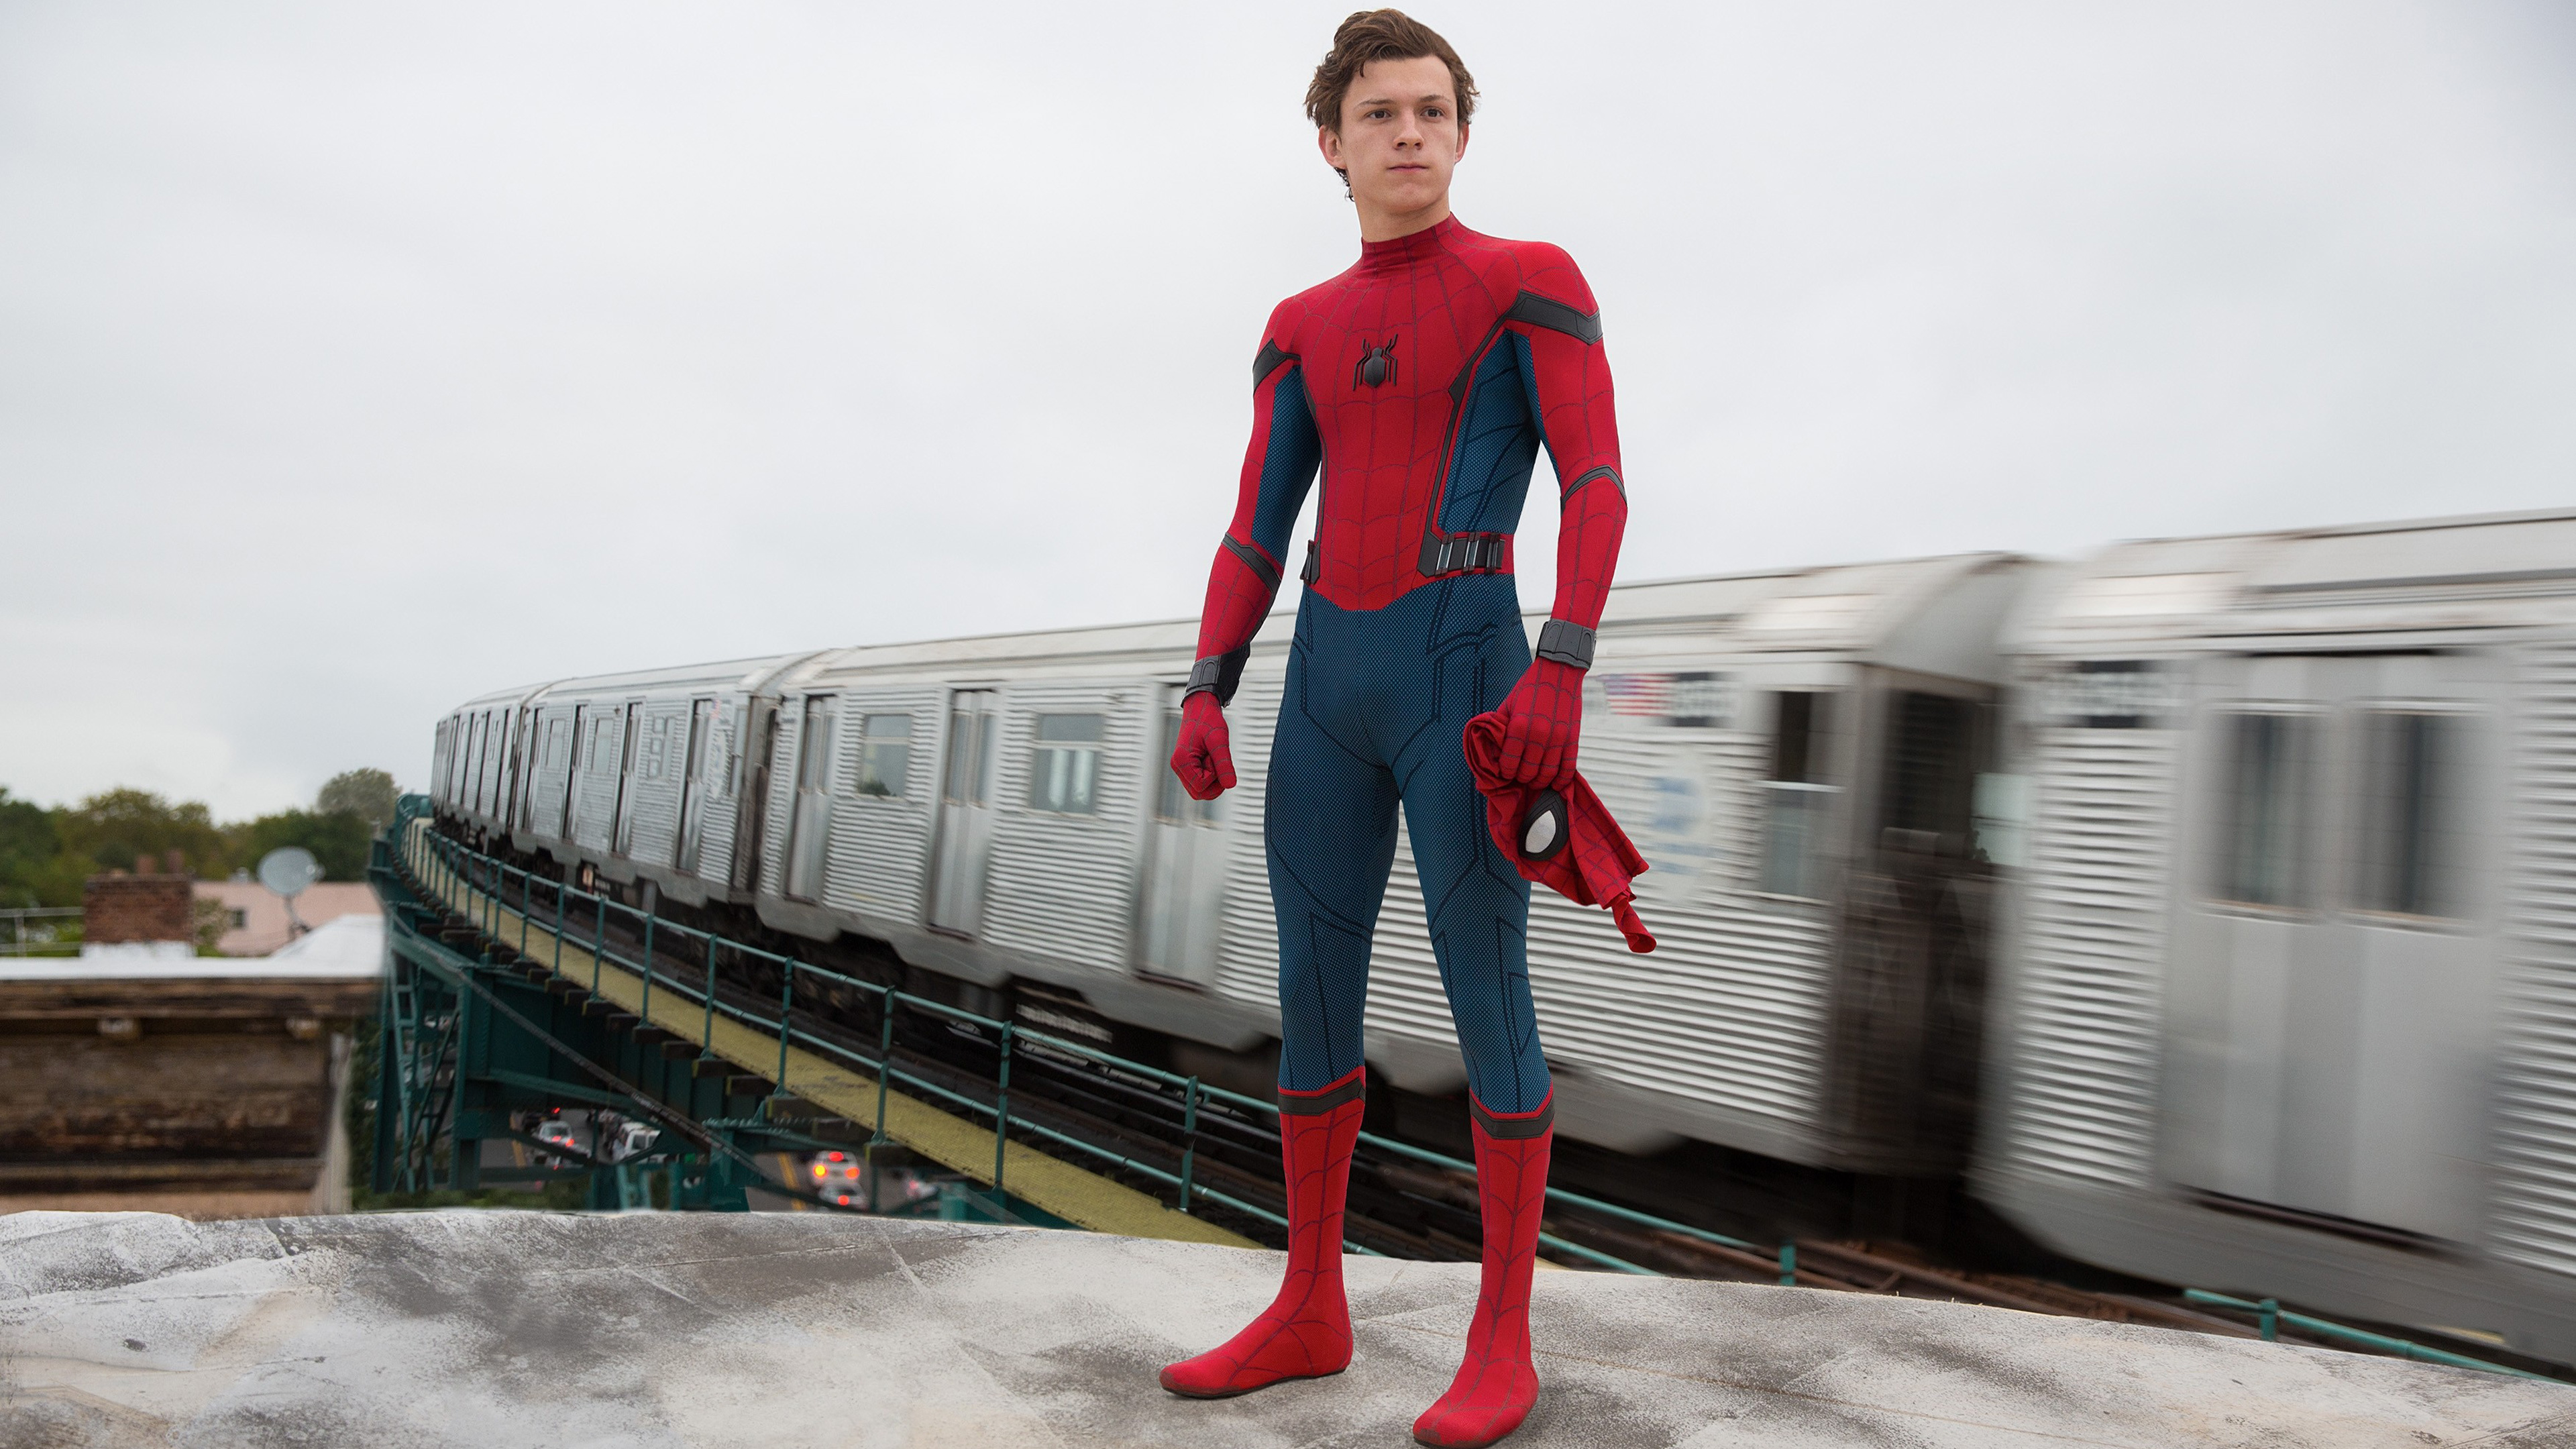 spiderman homecoming tom holland 4k 2017 movie 1536400680 - Spiderman Homecoming Tom Holland 4k 2017 Movie - tom holland wallpapers, spiderman wallpapers, spiderman homecoming wallpapers, movies wallpapers, hd-wallpapers, 4k-wallpapers, 2017 movies wallpapers